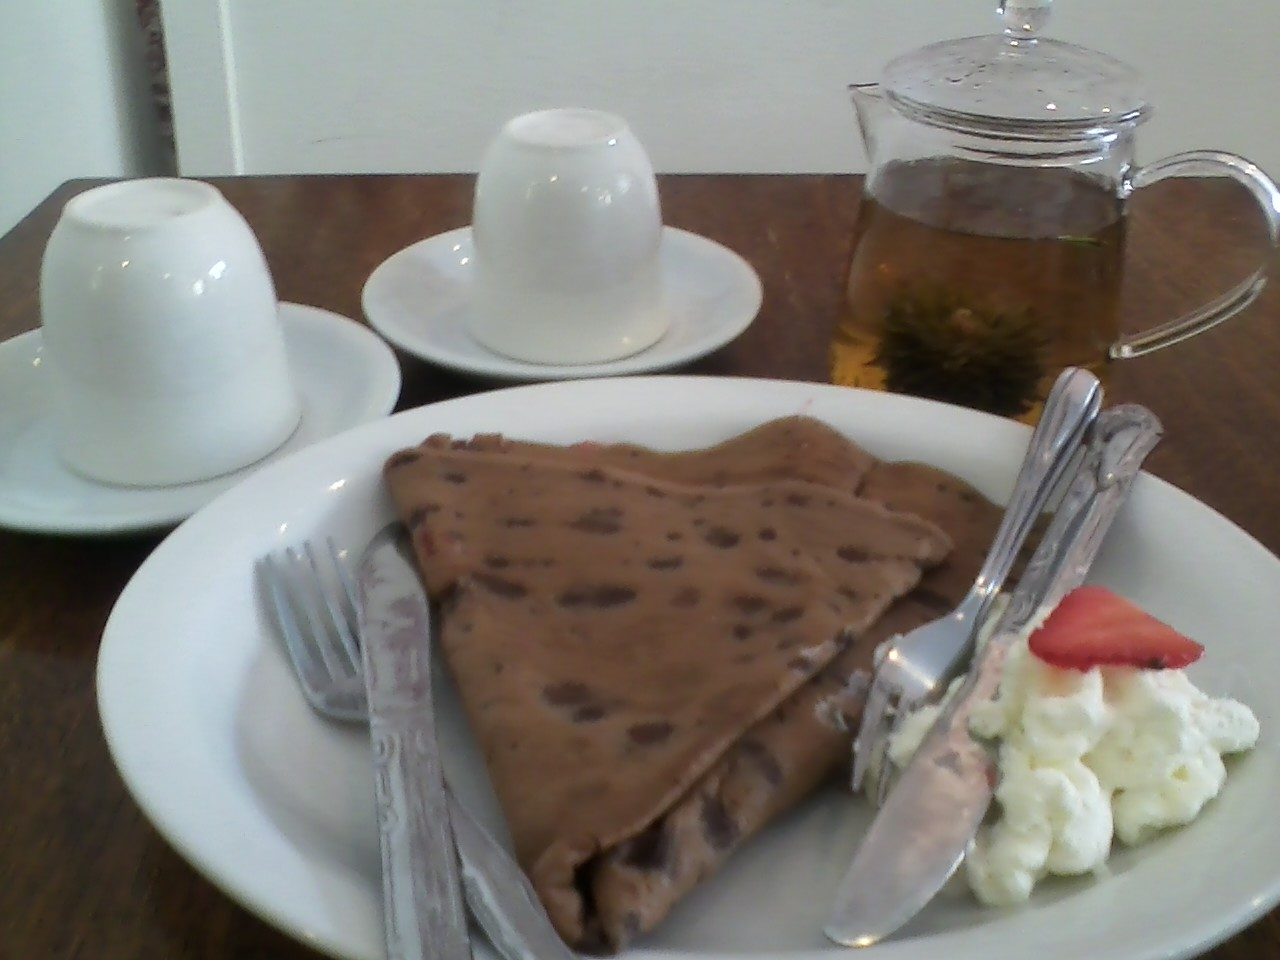 Blooming rose tea and chocolate crepes. Bring a friend! Buy any crepe or bakery item and get 50% off another of equal or lesser value. LIMITED TIME ONLY!